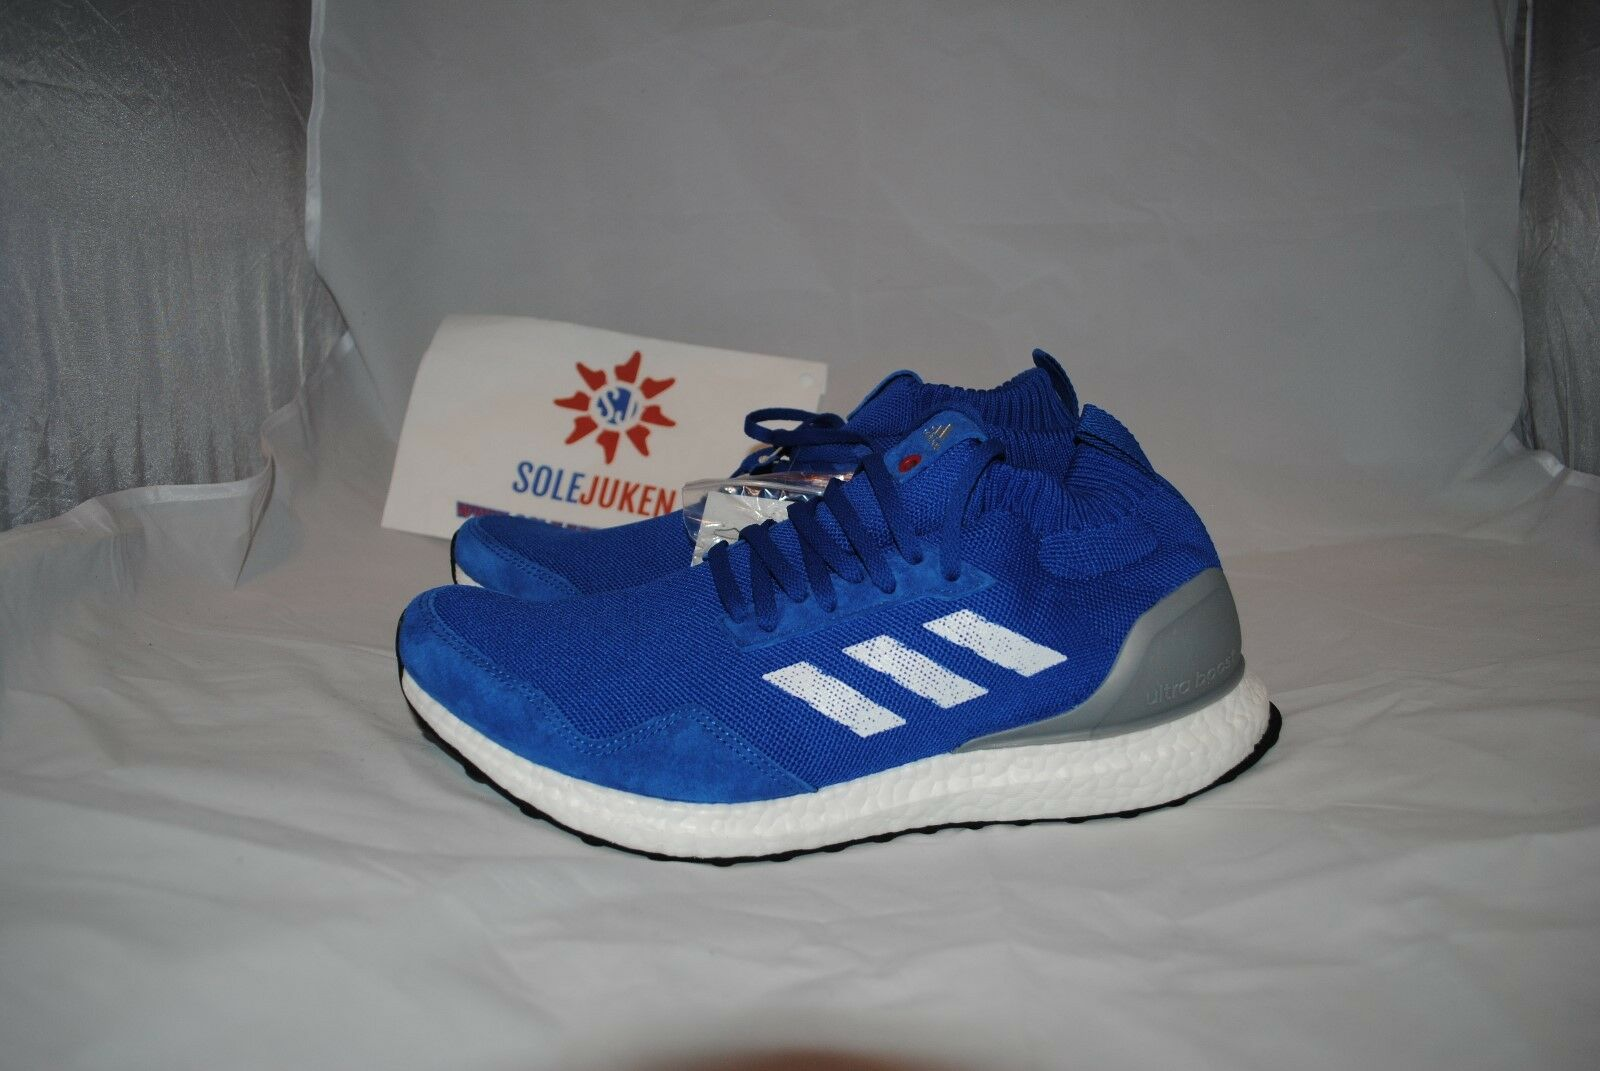 ADIDAS ULTRA BOOST MID RUN THRU TIME blueE BY5036 - SIZE 8-12 - Yeezy , HM